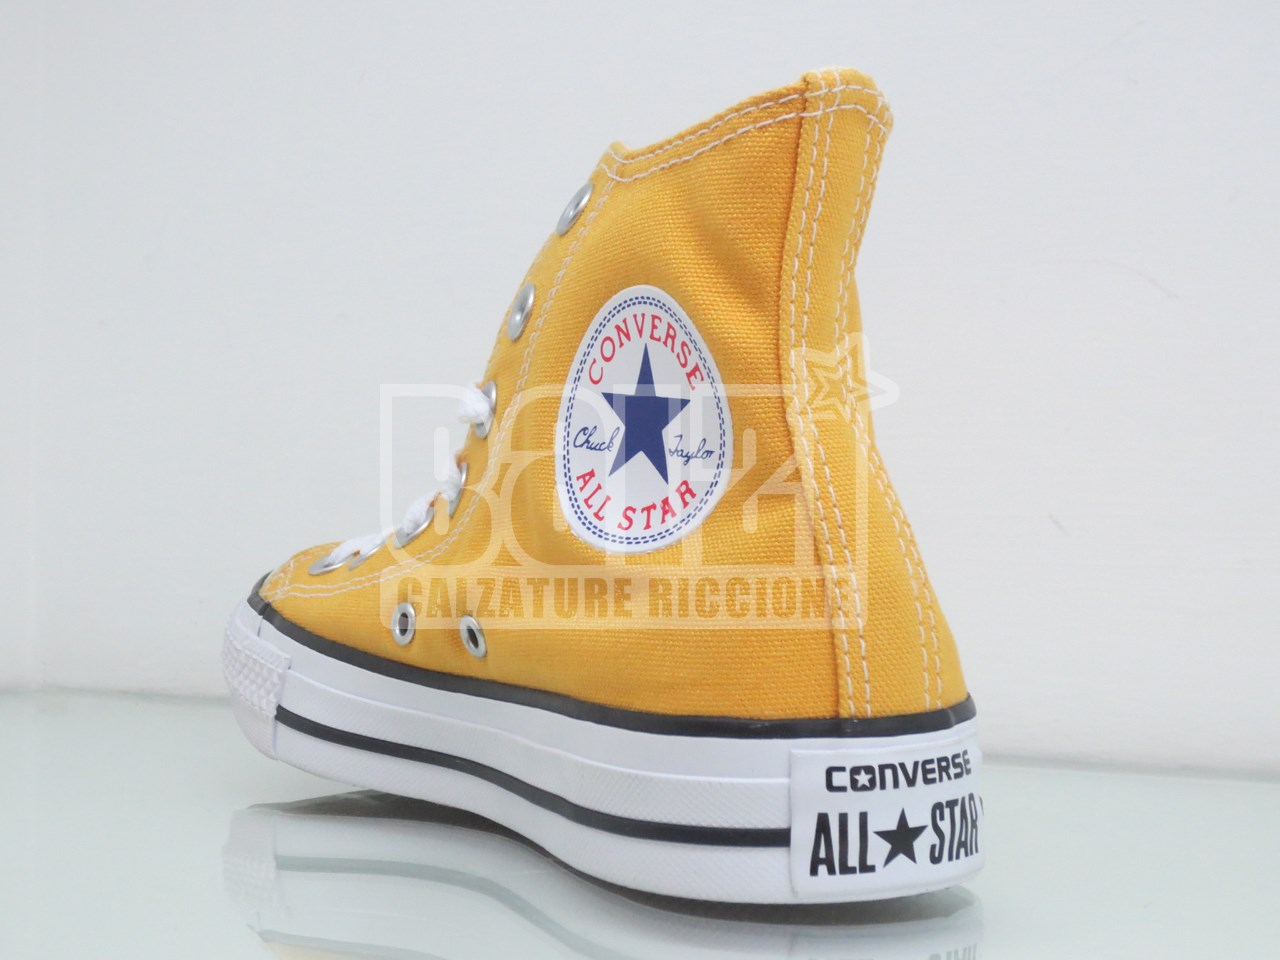 all star converse 26 gialle